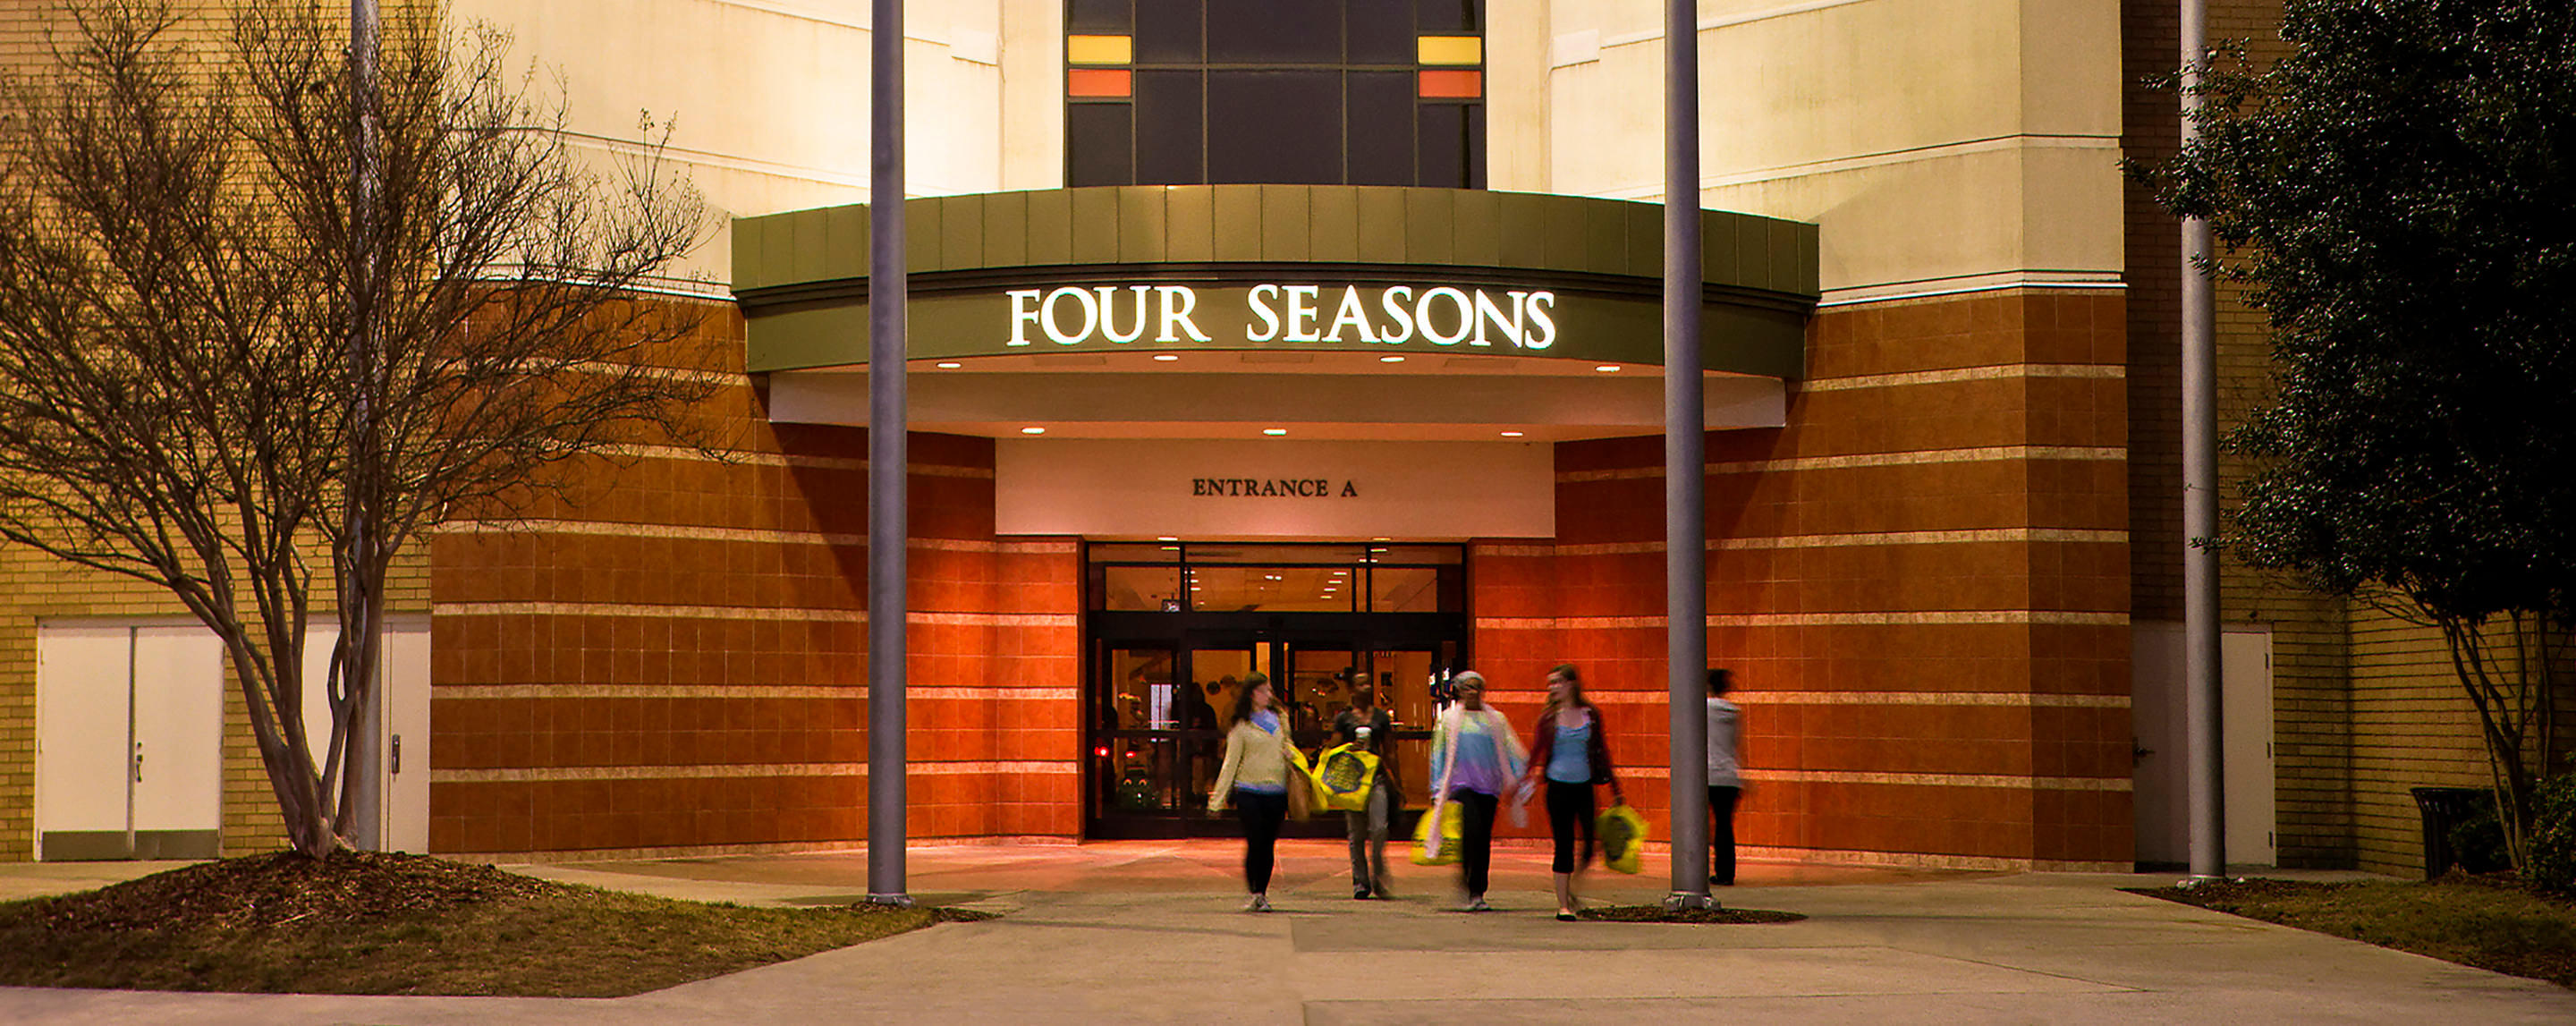 Four Seasons Town Centre In Greensboro Nc Whitepages